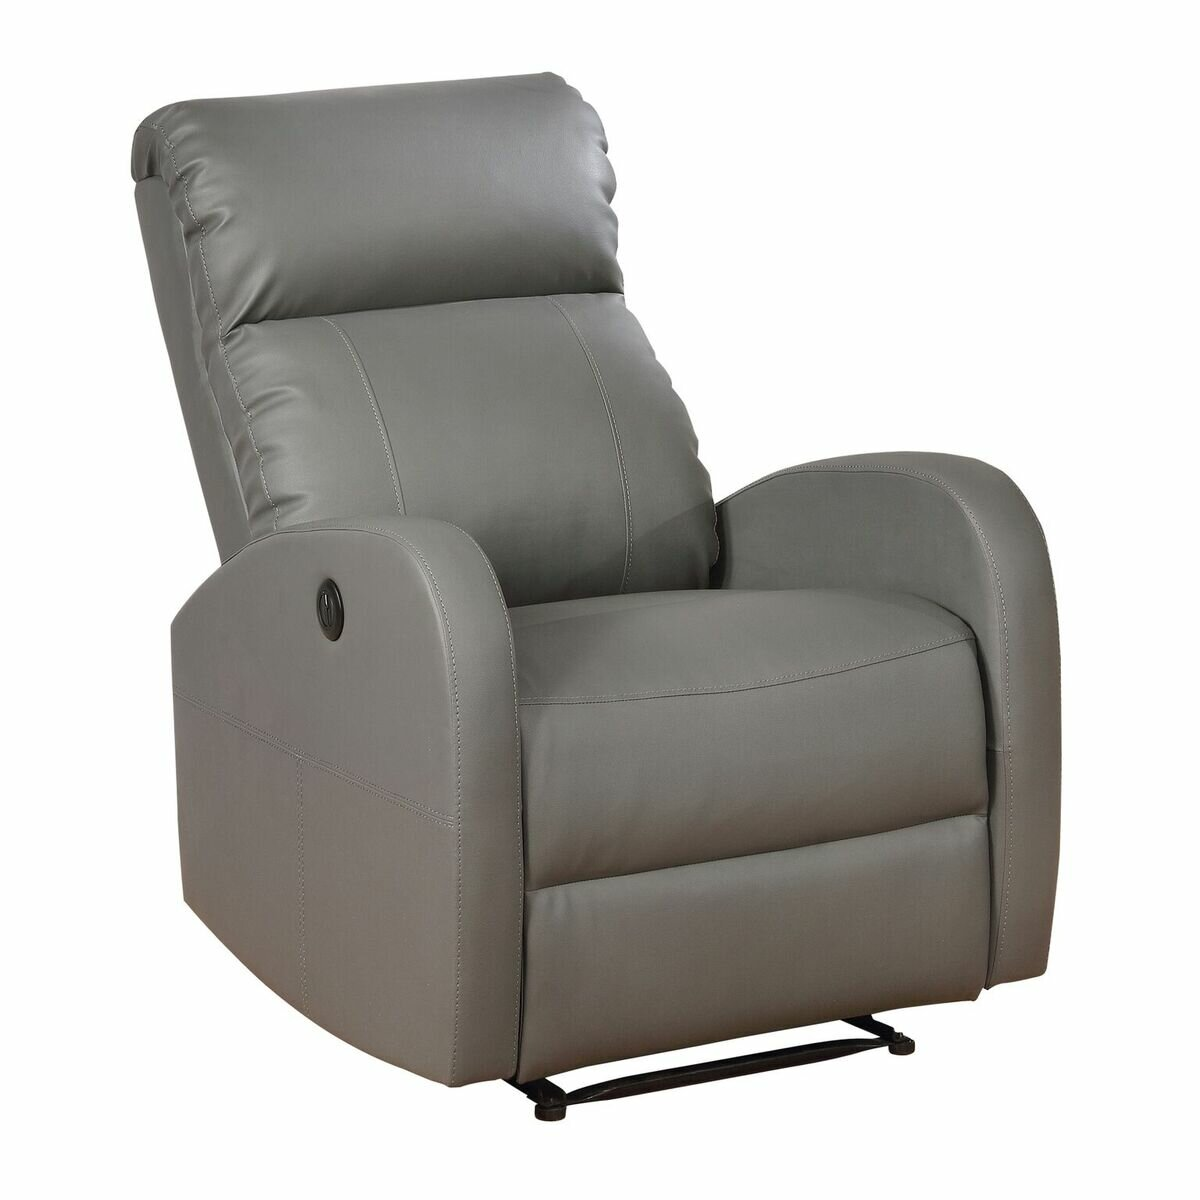 taupe chairs chair recliner sofas modern leather loveseats power and colour reclining